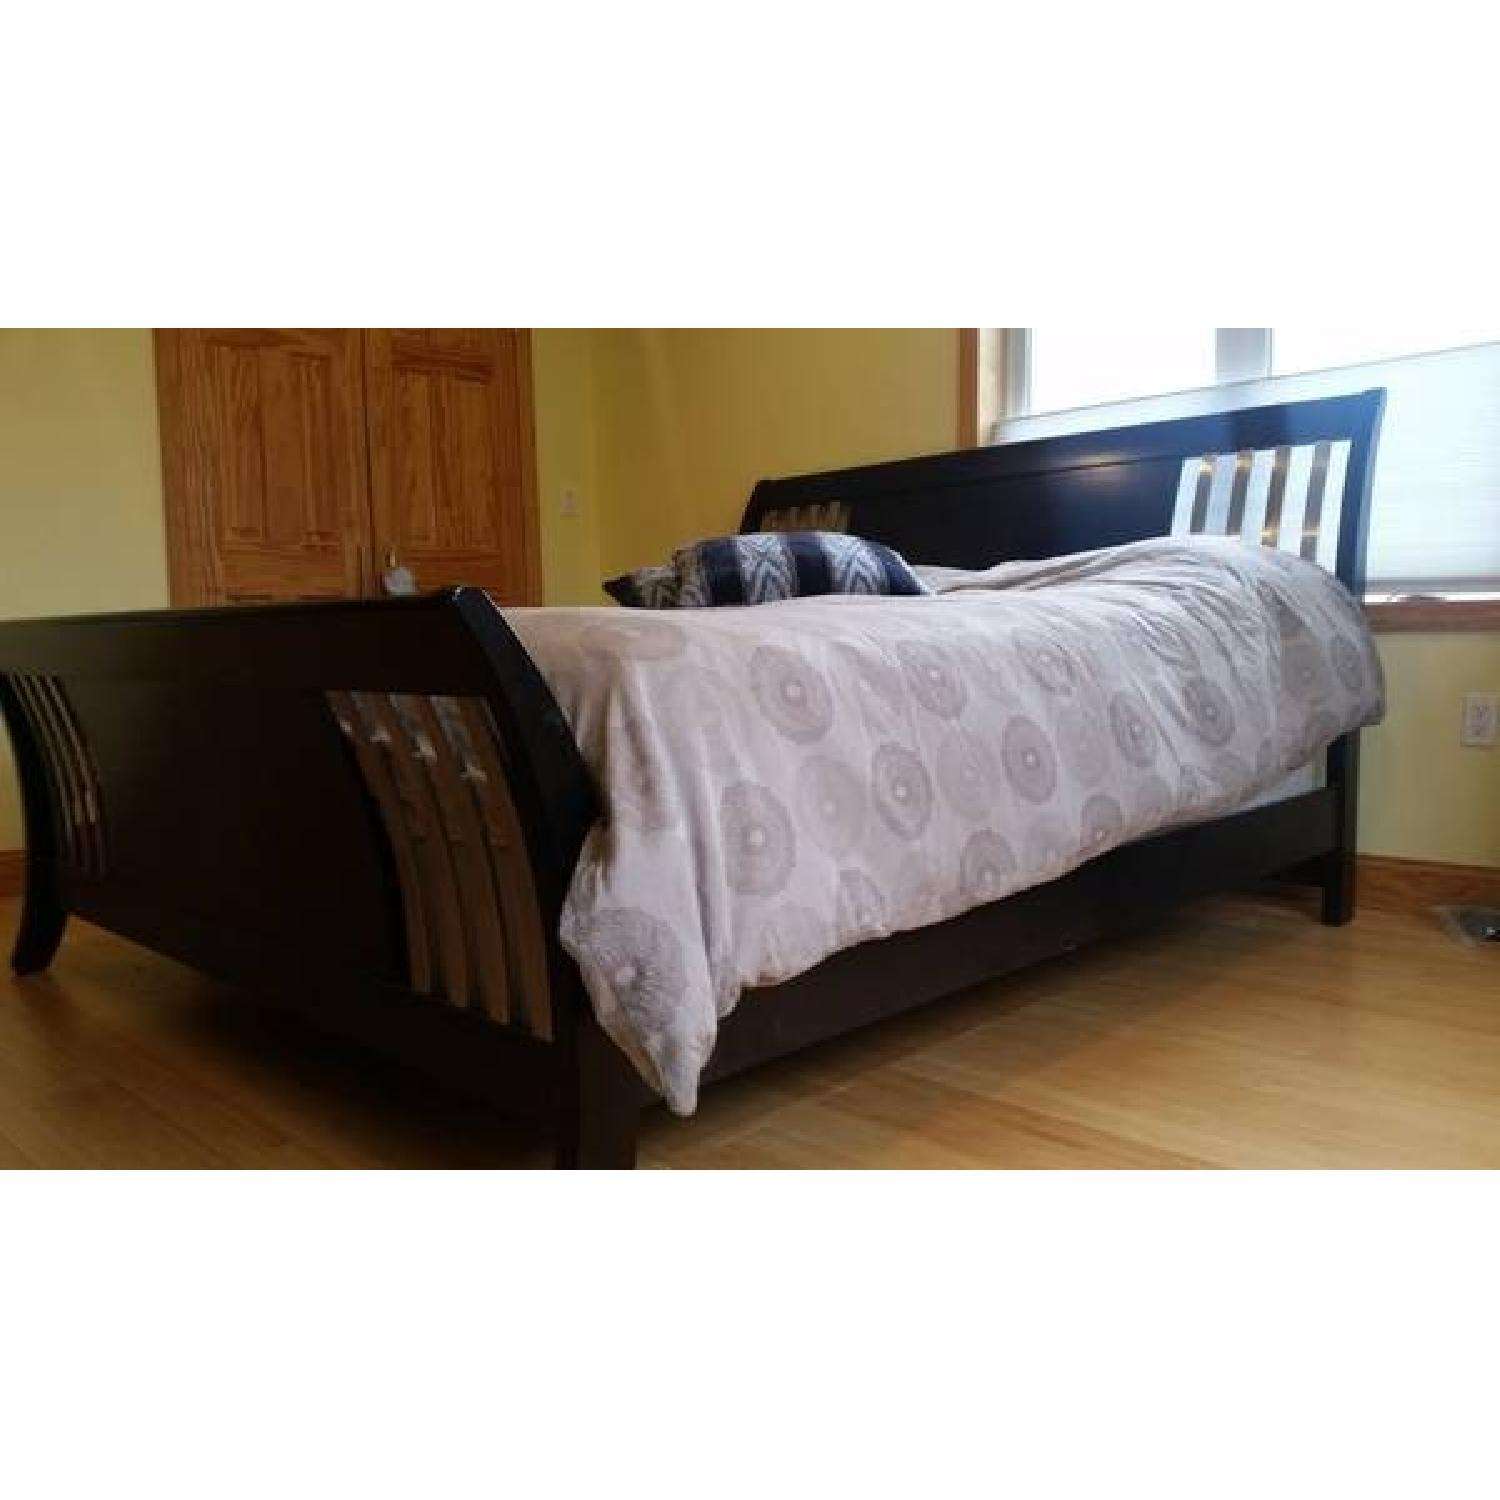 King Size Sleigh Bed Frame - image-8